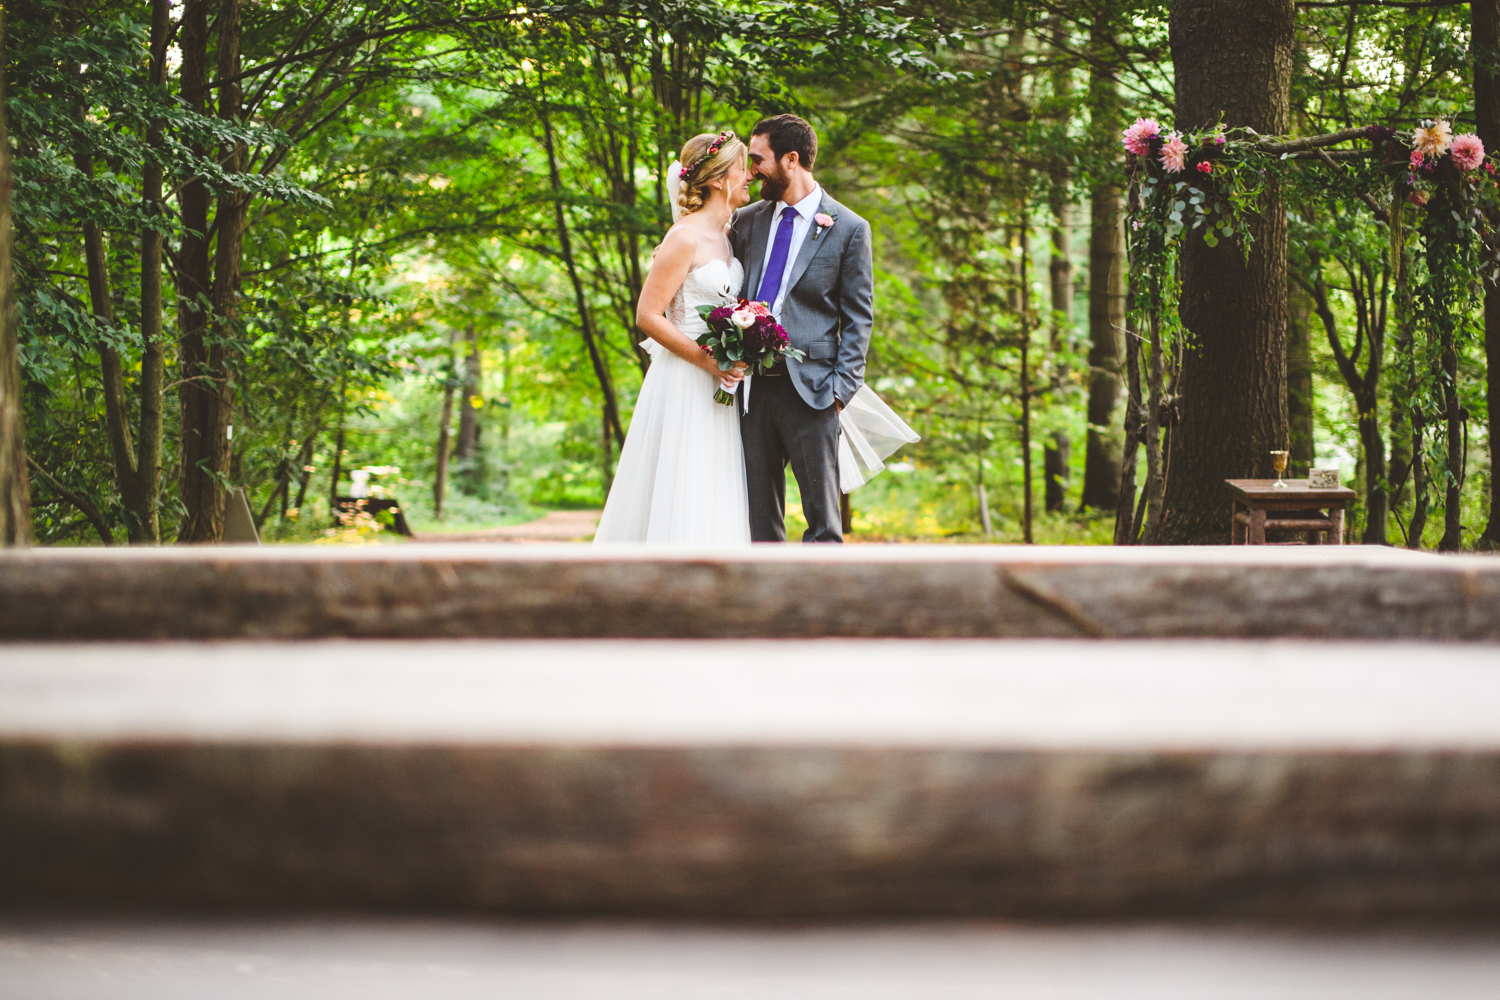 014 - portrait of bride and groom in forest with wooden seats in foreground.jpg